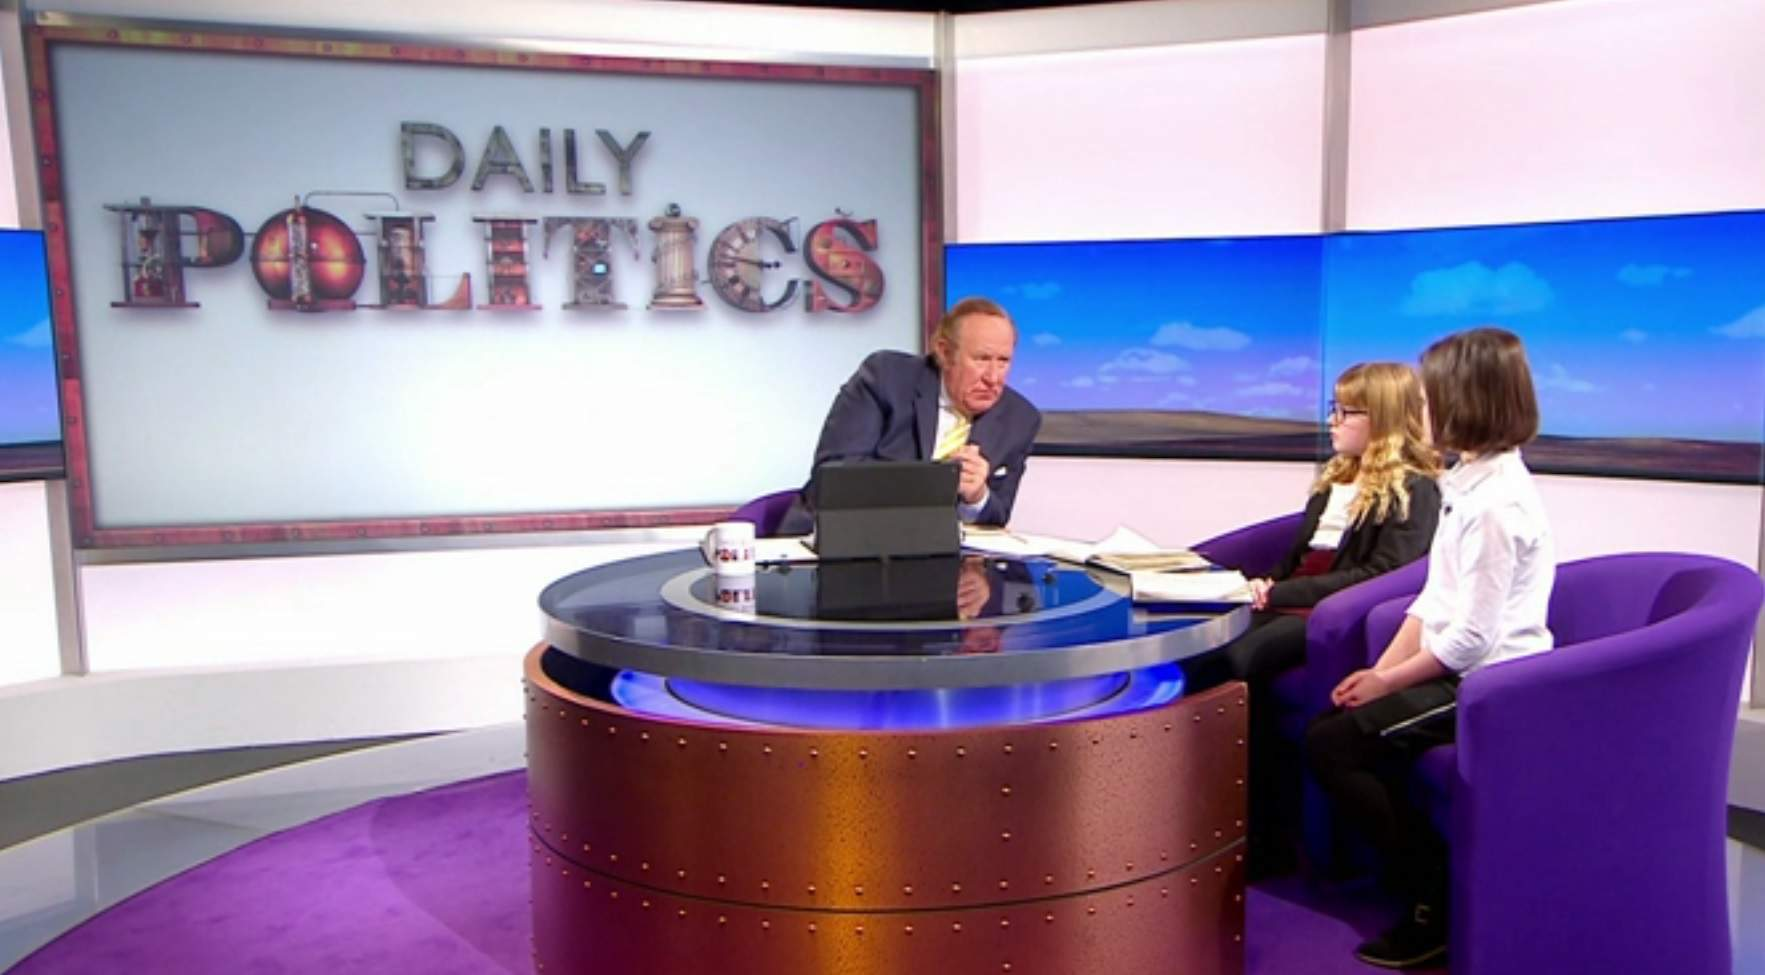 Life is tough as a former special adviser, shouting at the Daily Politics in your pants